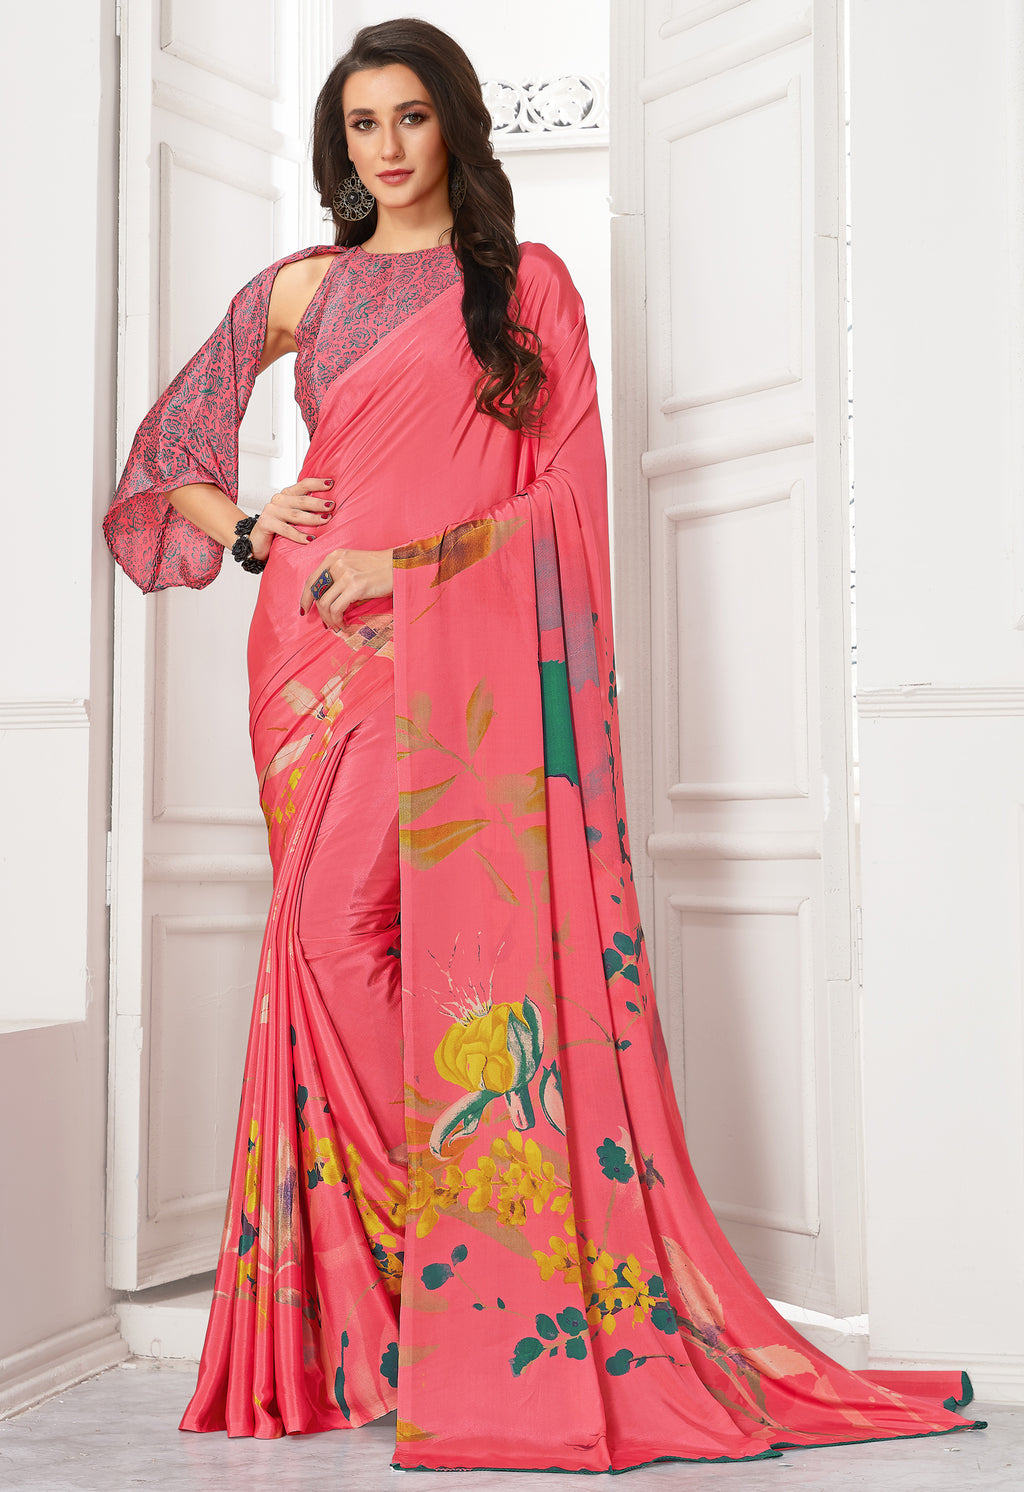 Pink Color Crepe  Digital Print Kitty Party Sarees NYF-8106